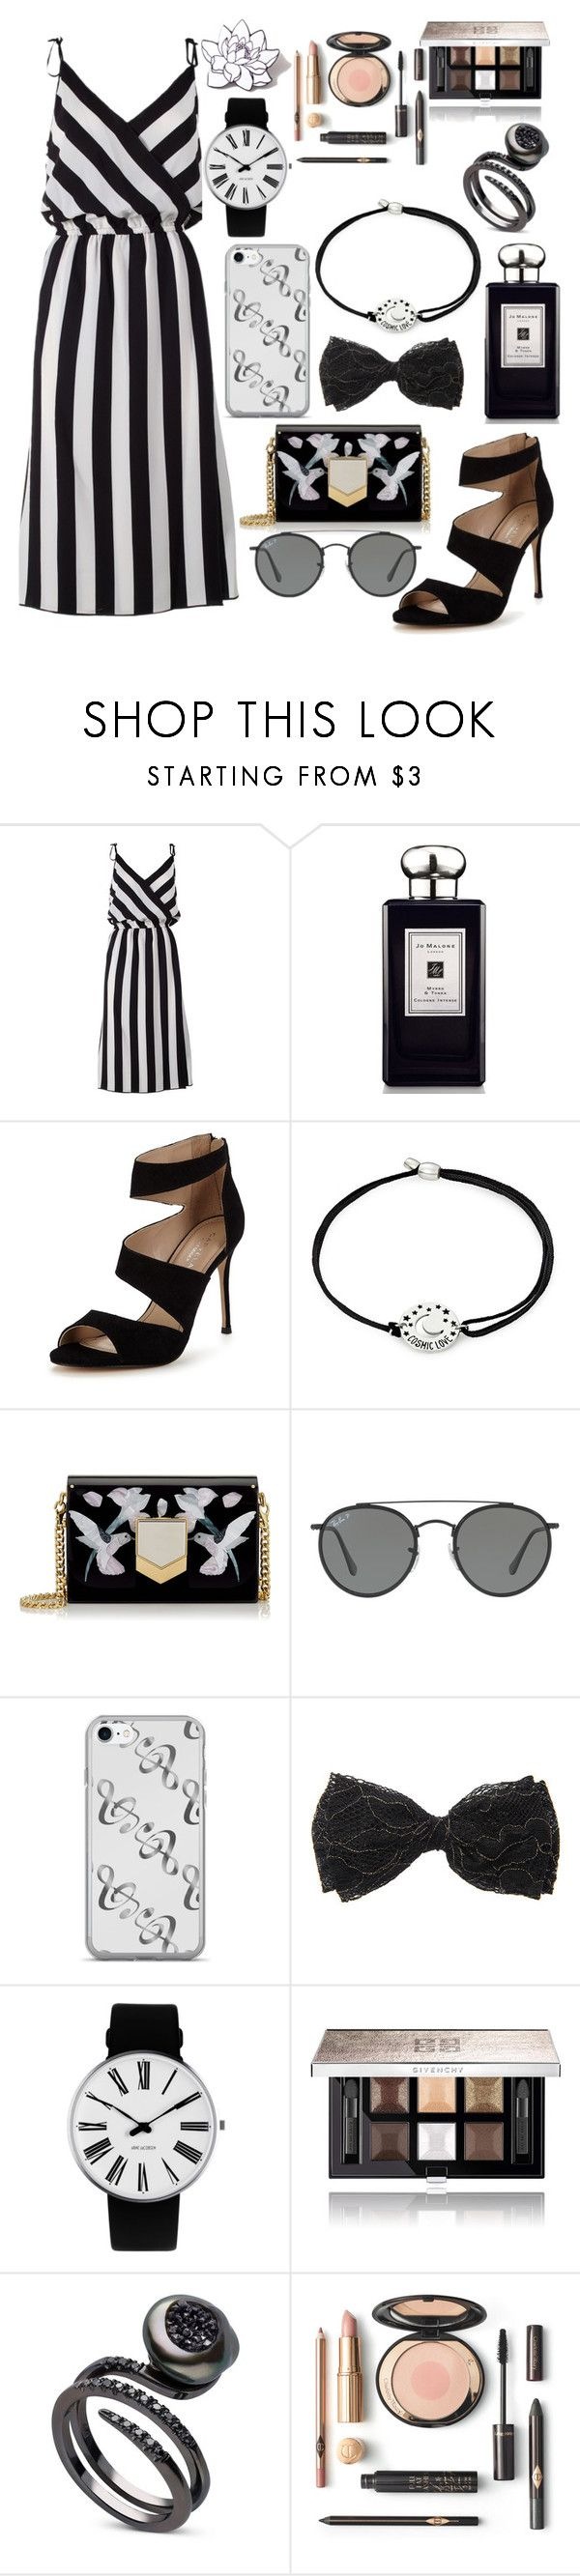 """""""Untitled #92"""" by christinaioana ❤ liked on Polyvore featuring Marc Jacobs, Jo Malone, Carvela, Alex and Ani, Jimmy Choo, Ray-Ban, Rosendahl, Givenchy and PINTRILL"""